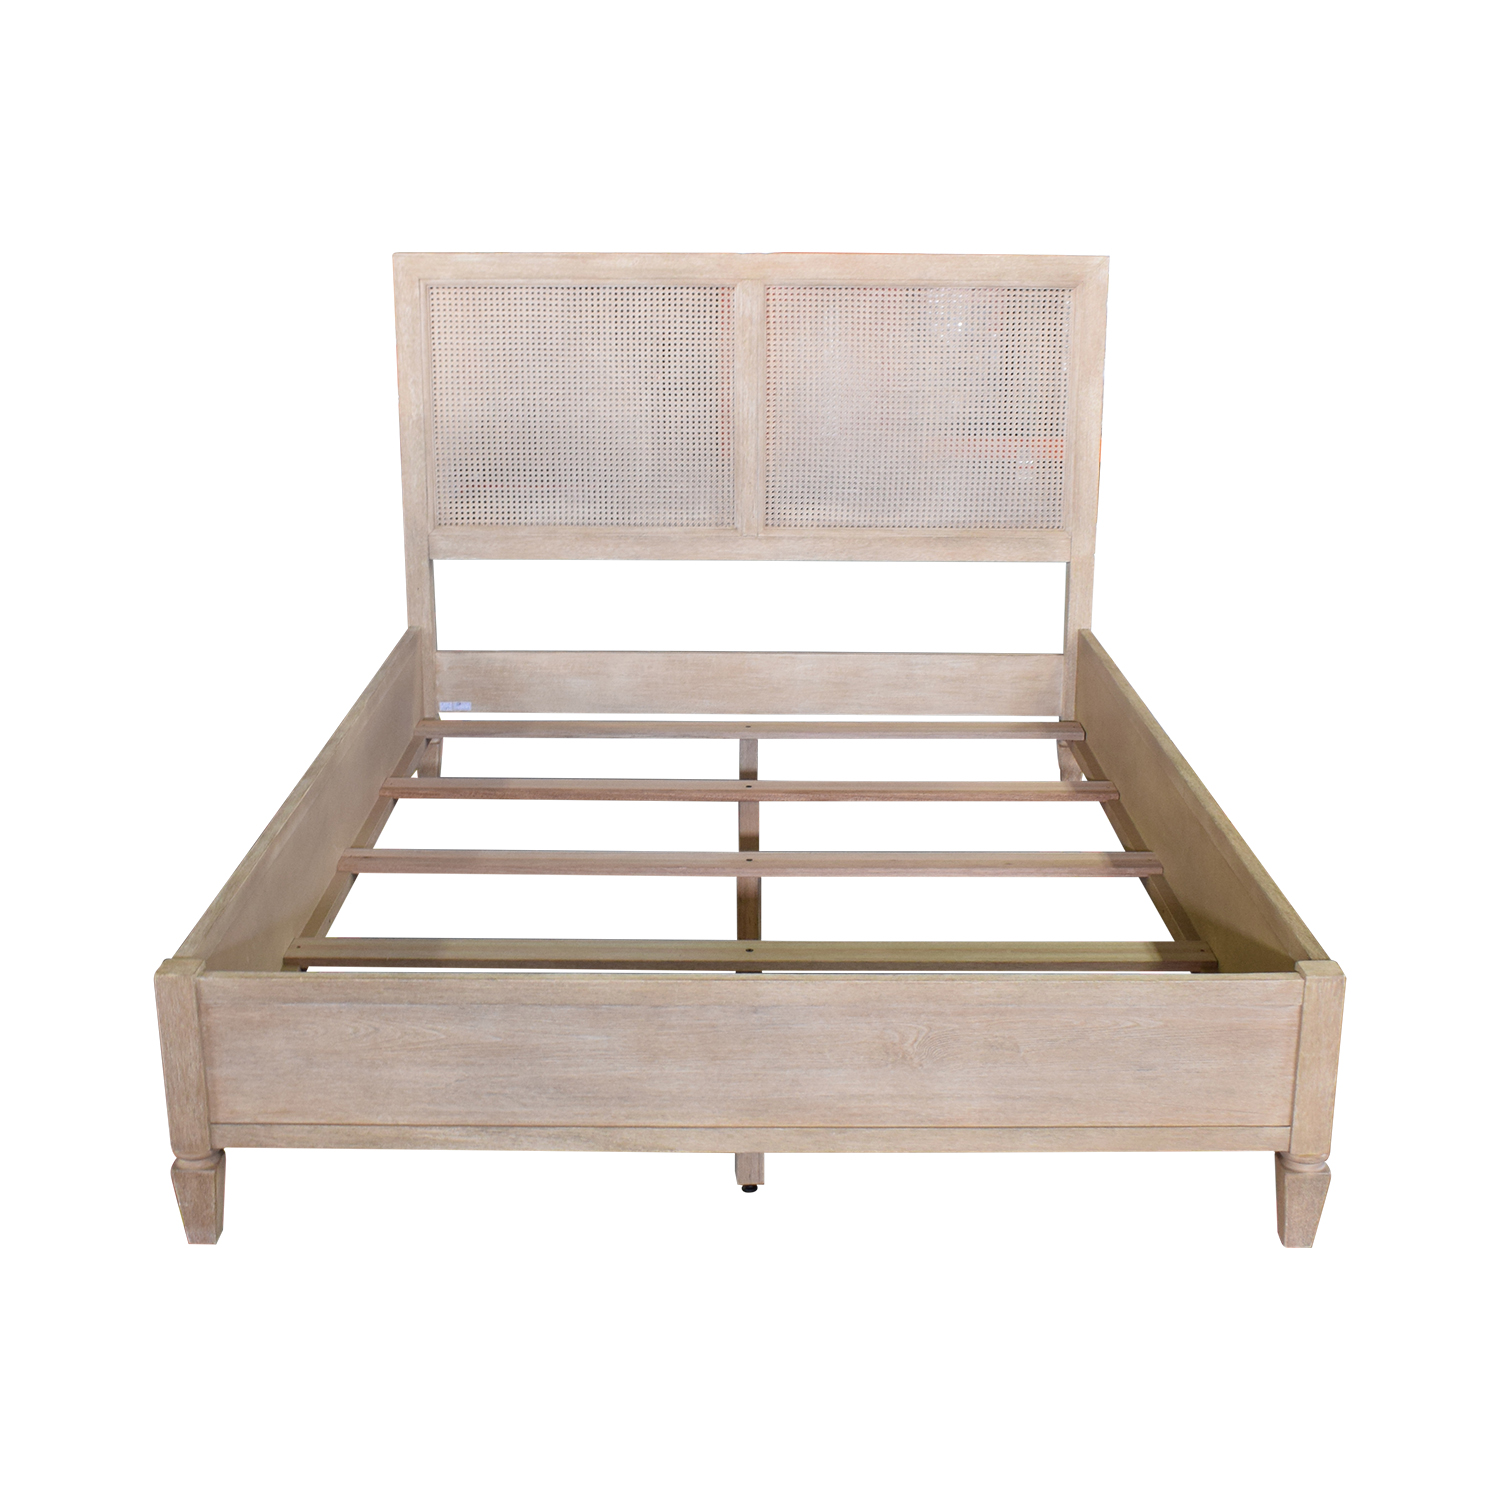 shop Pottery Barn Sausalito Queen Bed Pottery Barn Bed Frames